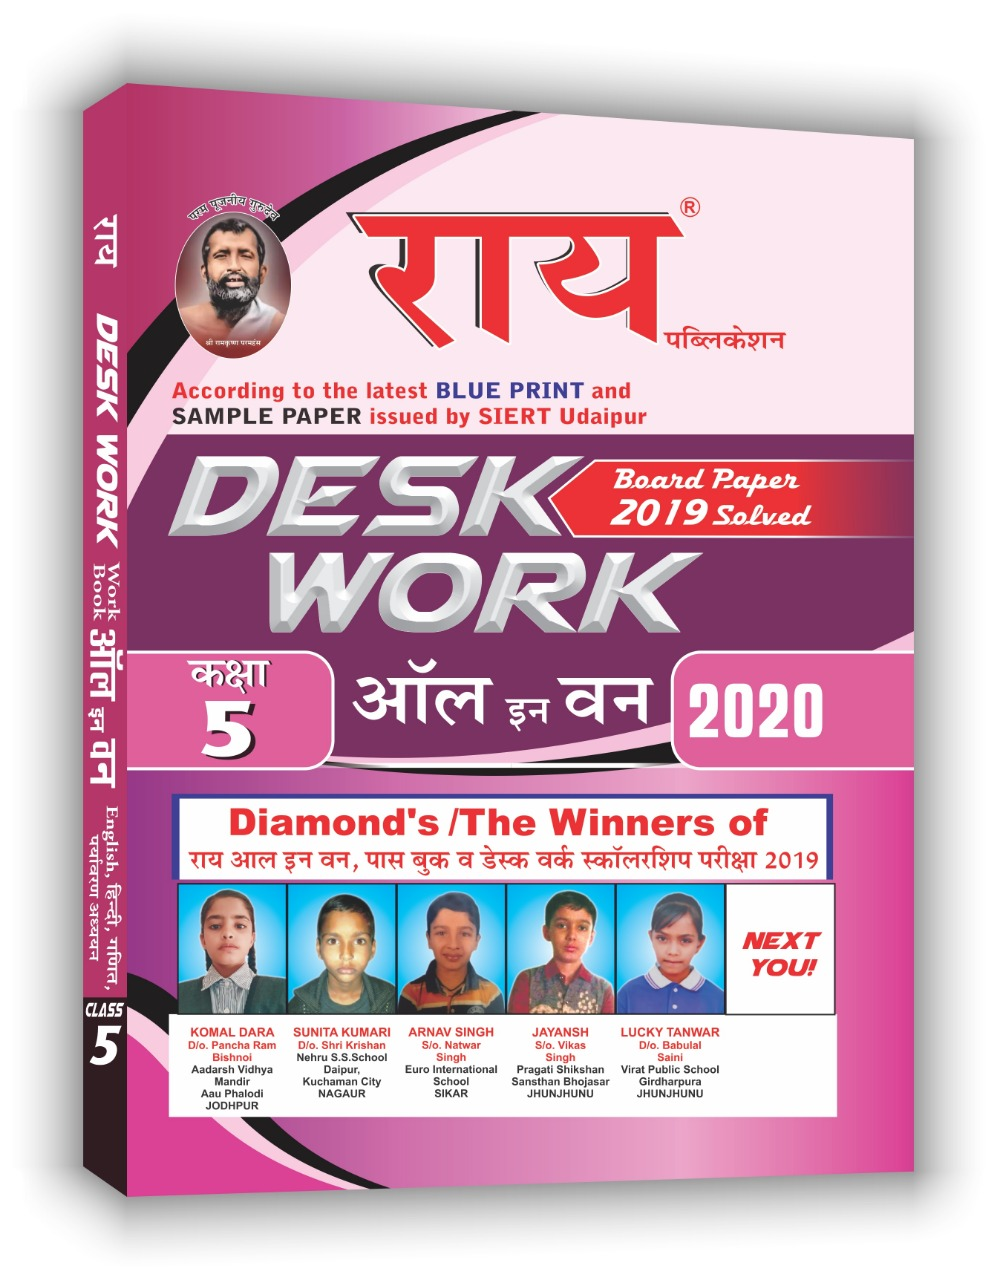 Rai Desk Work-2020 Class 5th Hindi Medium with free Scholarship Exam Form( Blue Print , Board Paper ,19 Model Papers +13 Self Evaluation Papers ) ( All in One ,5th) ( Desk work for RBSE Hindi Medium) ( Rai Scholarship Exam Form class 5th H.M.)